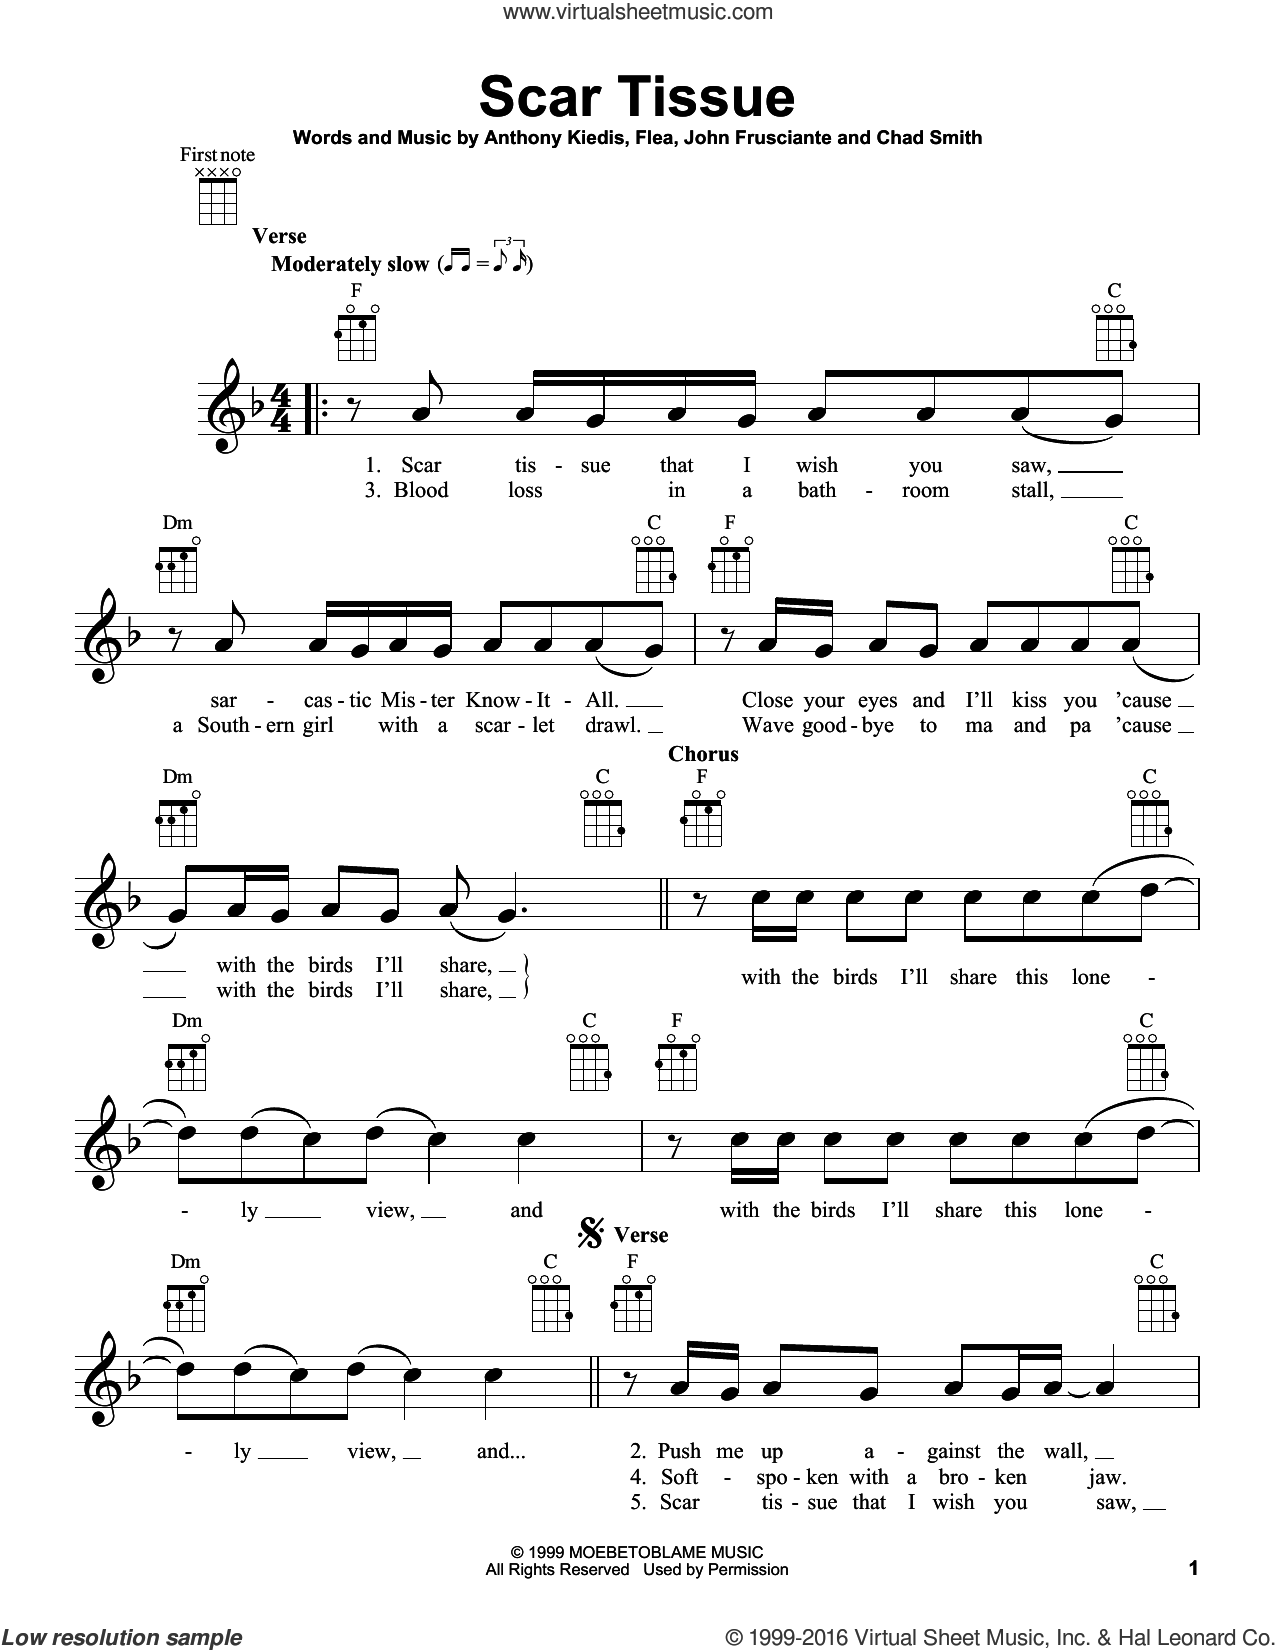 Scar Tissue sheet music for ukulele by Red Hot Chili Peppers, Anthony Kiedis, Chad Smith, Flea and John Frusciante, intermediate skill level